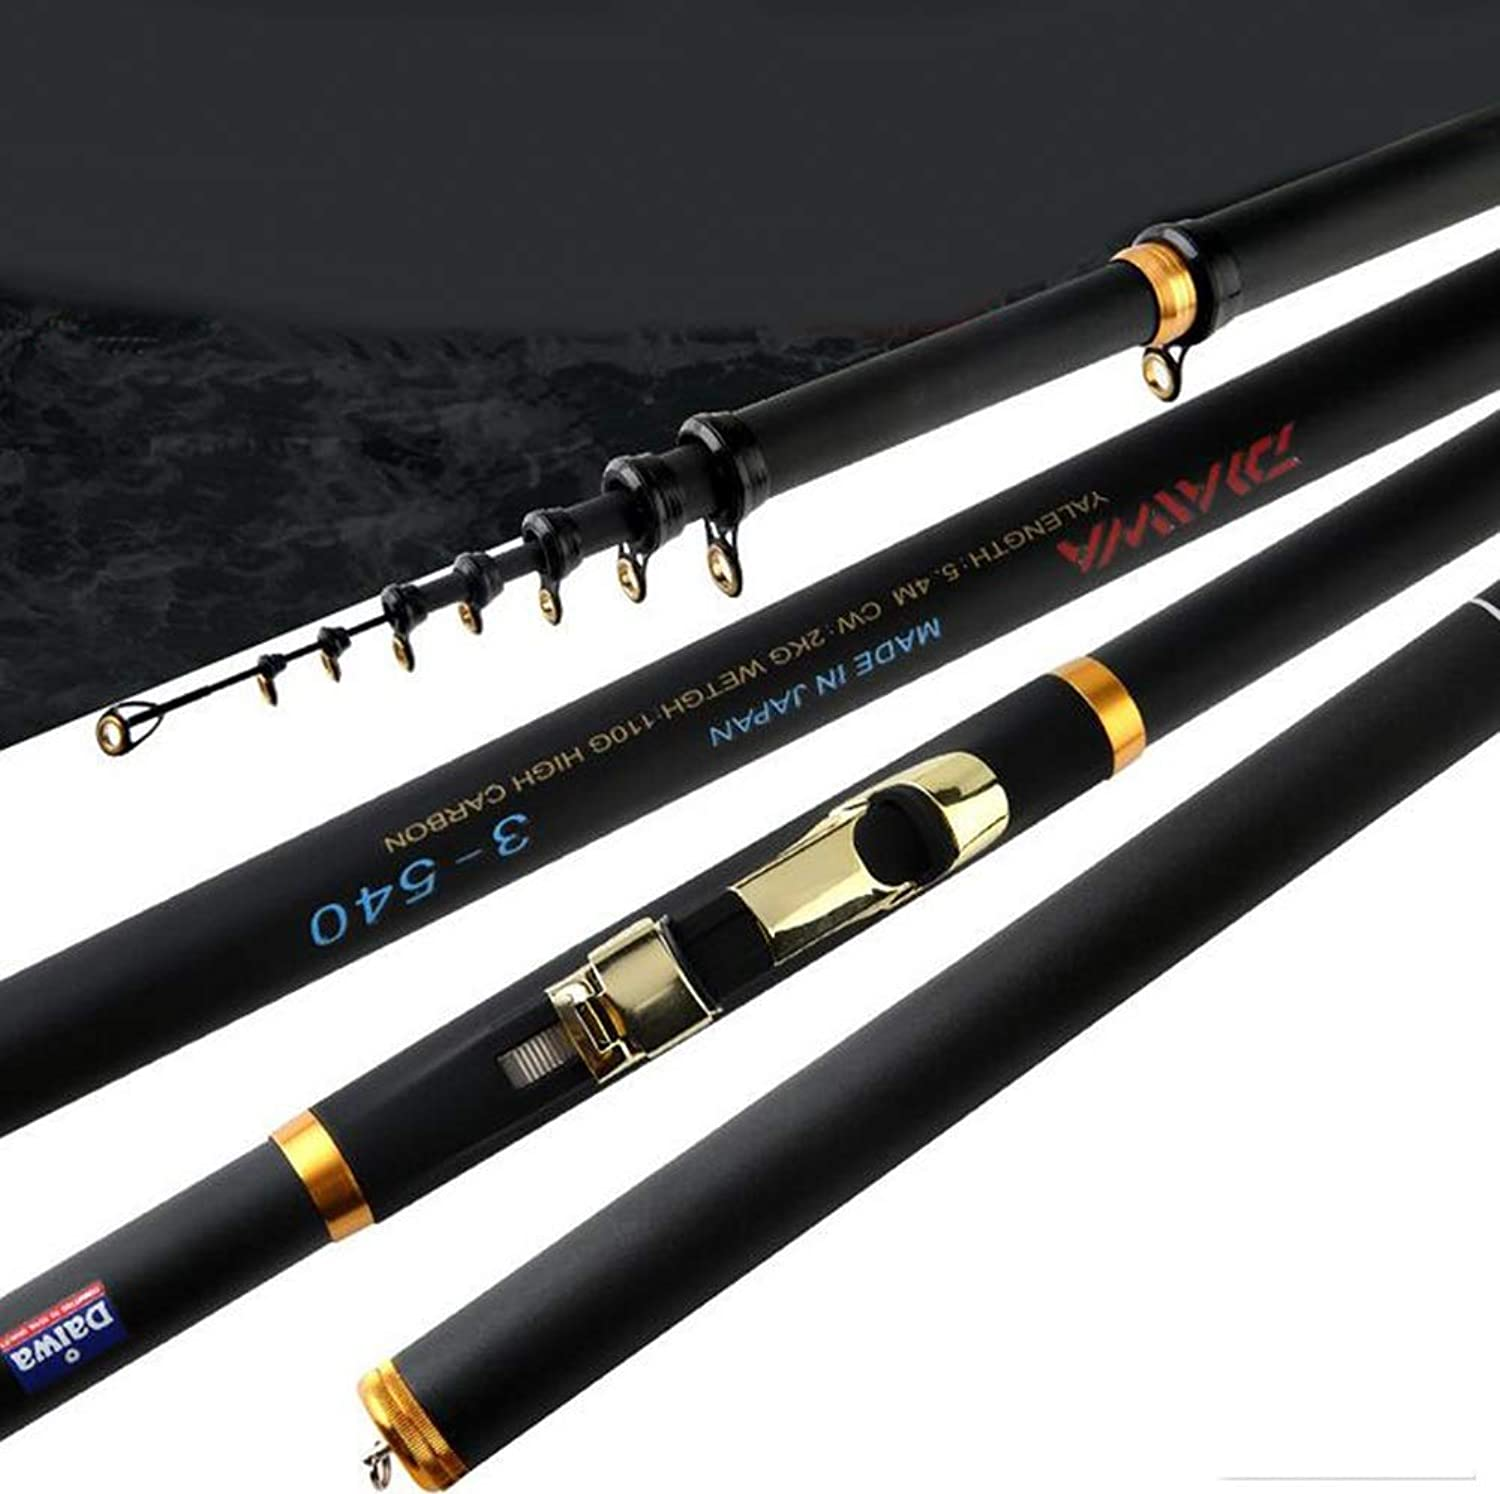 Carbon Positioning Fishing Rod 3.6 4.5 5.4 6.3 Meters UltraLight and Super Hard Comfortable Handle for Sea Black White